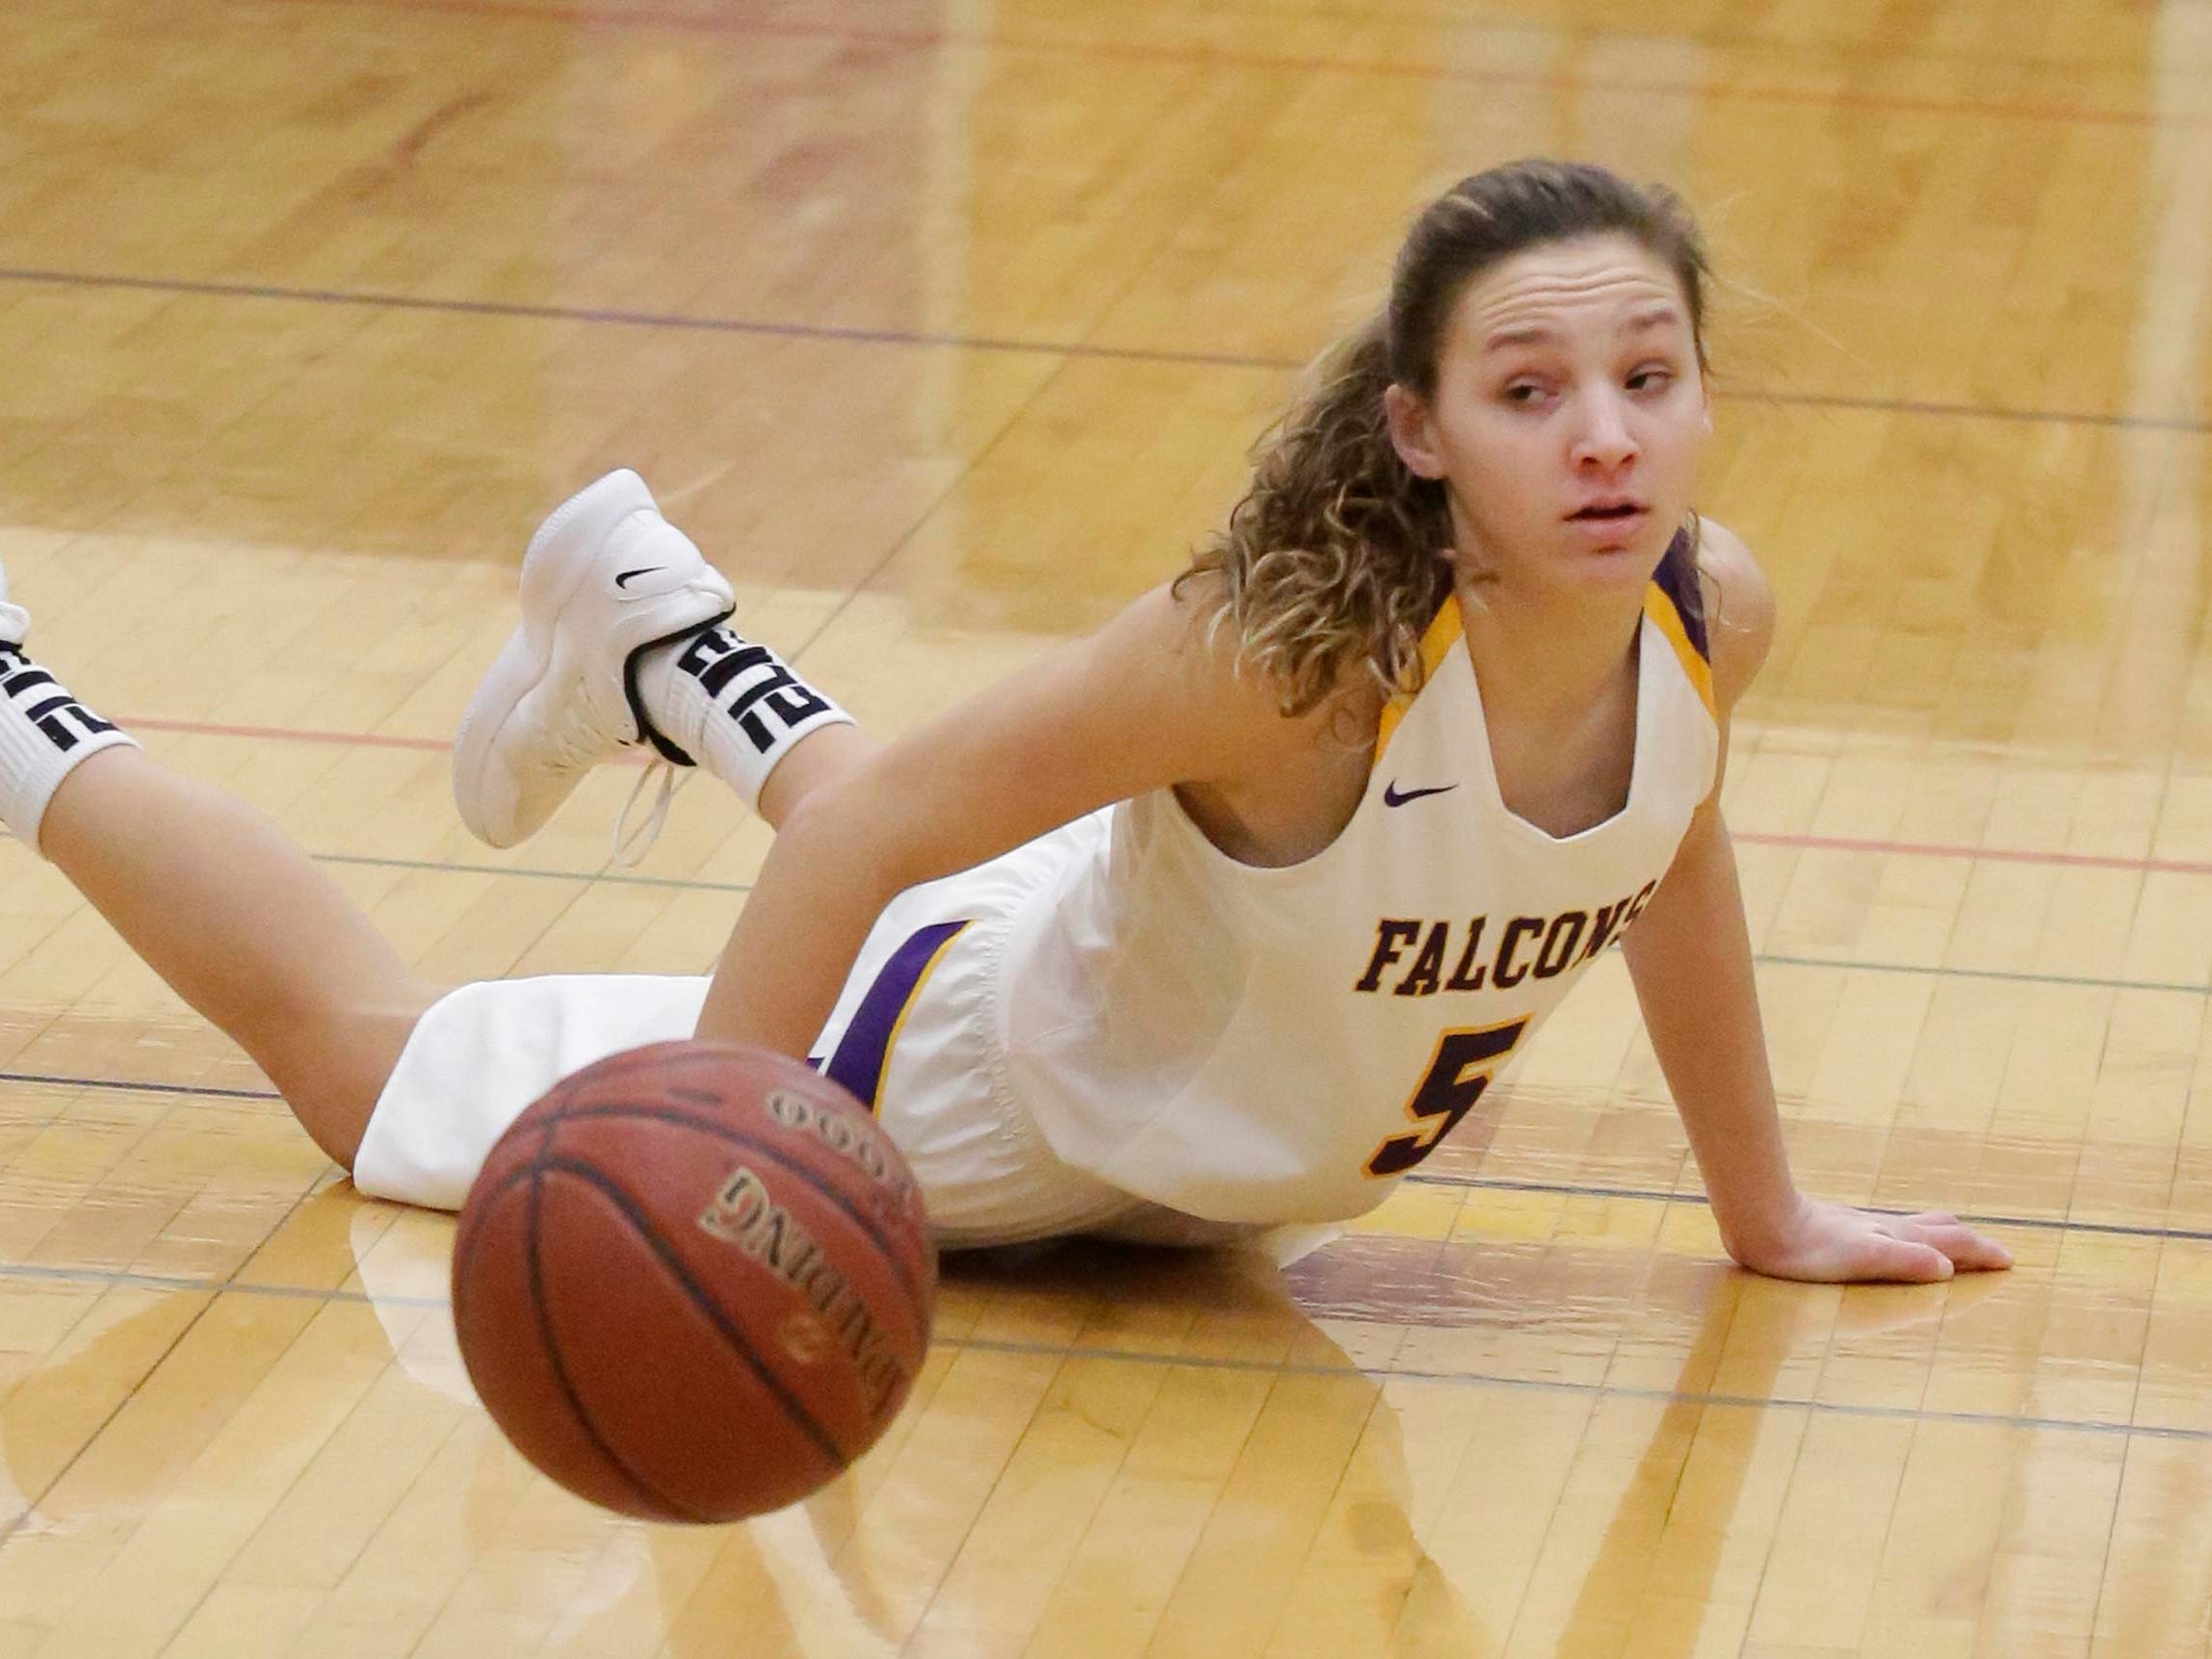 Sheboygan Falls' Madelaine Specht (5) looks at the loose ball during action with Roncalli, Friday, January 25, 2019, in Sheboygan Falls, Wis.